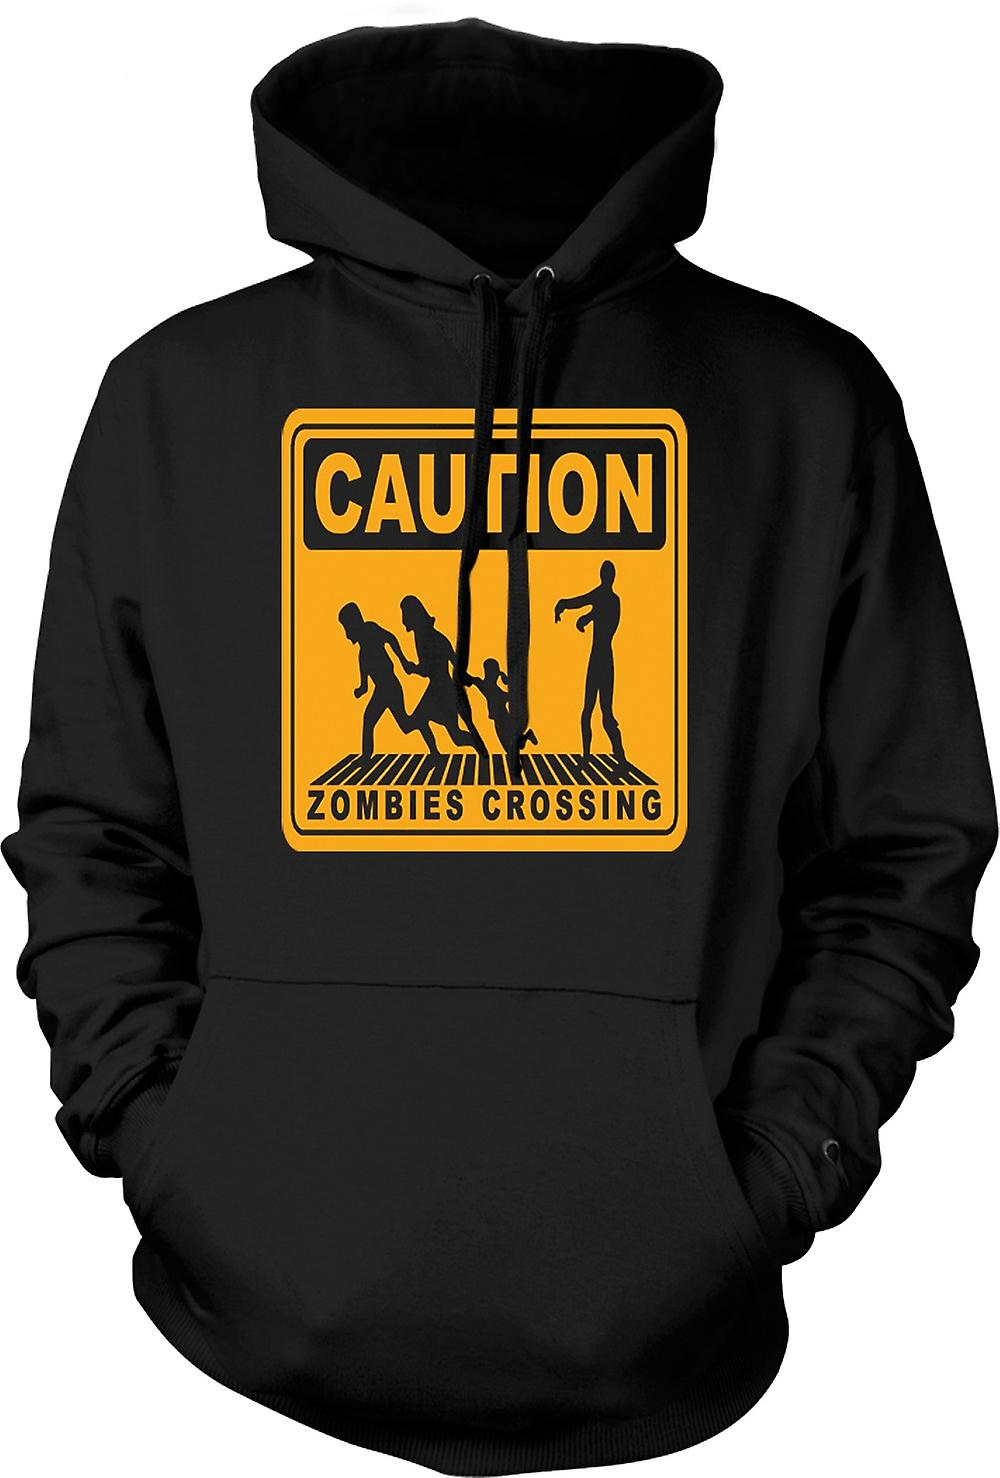 Mens Hoodie - Caution Zombies Crossing - Funny